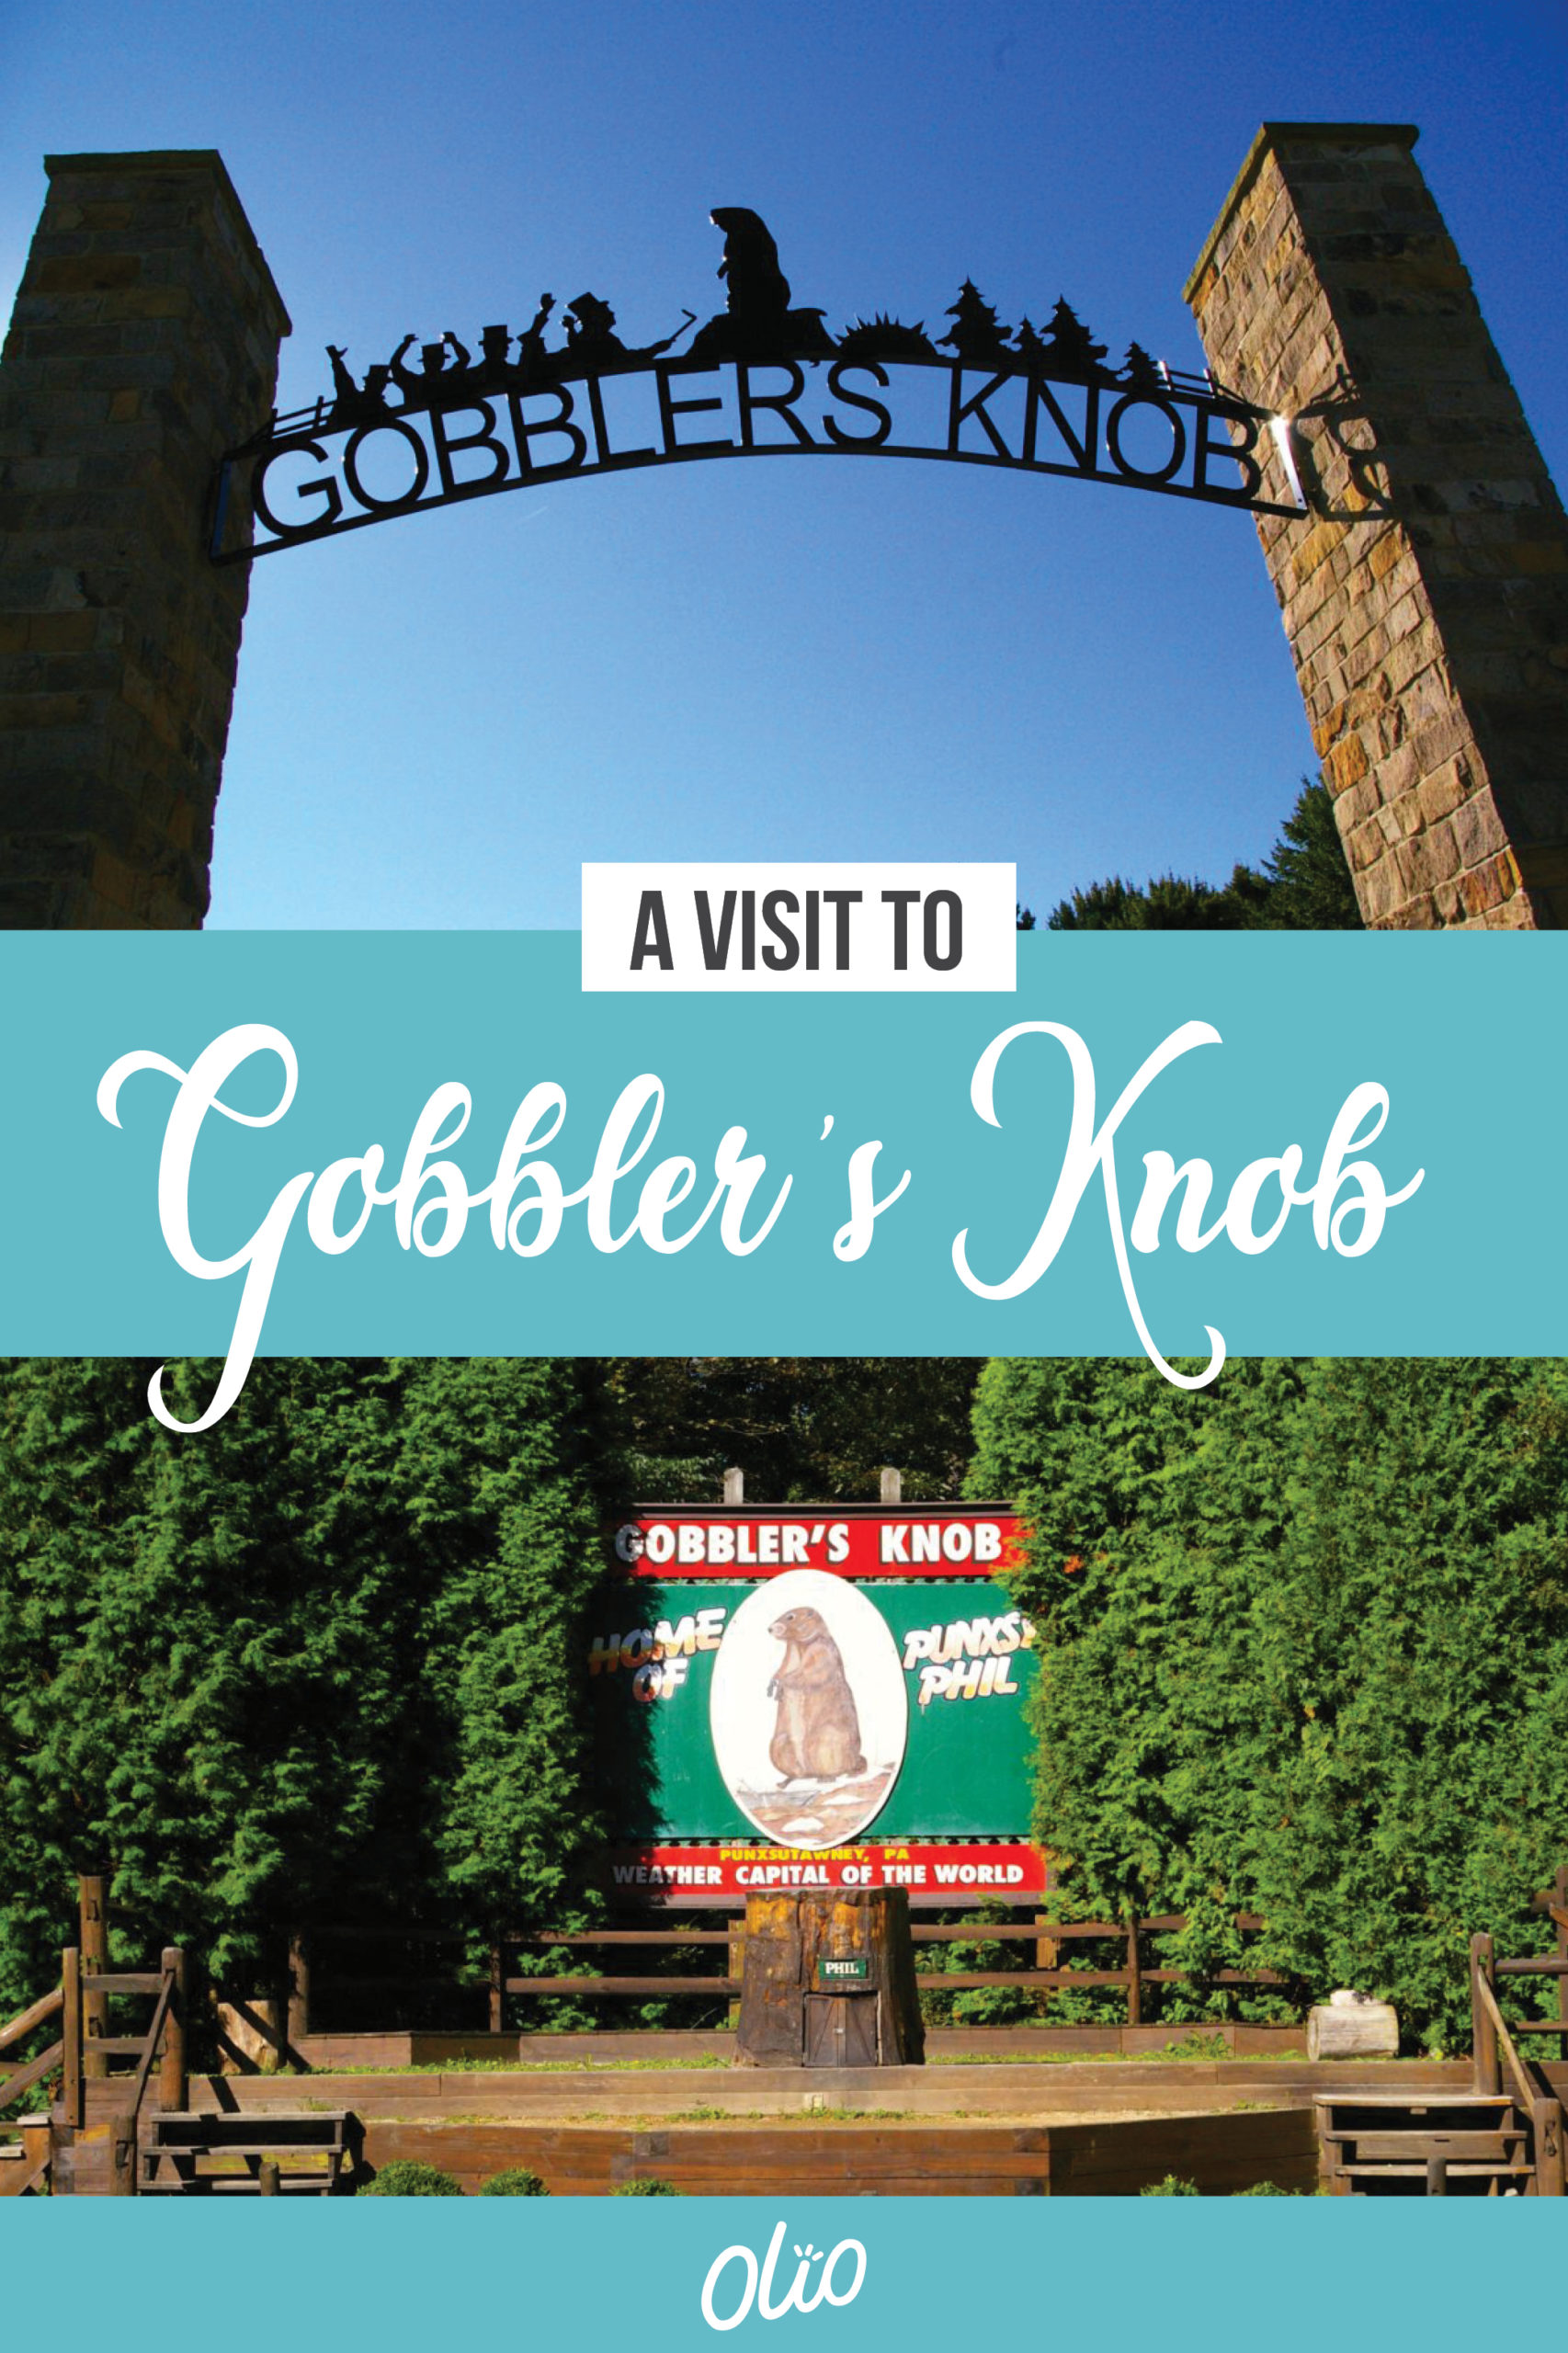 Have you ever wondered how we started entrusting our weather predictions in a groundhog? Discover the history of Groundhog Day with a visit to Gobbler's Knob in Punxsutawney, Pennsylvania!